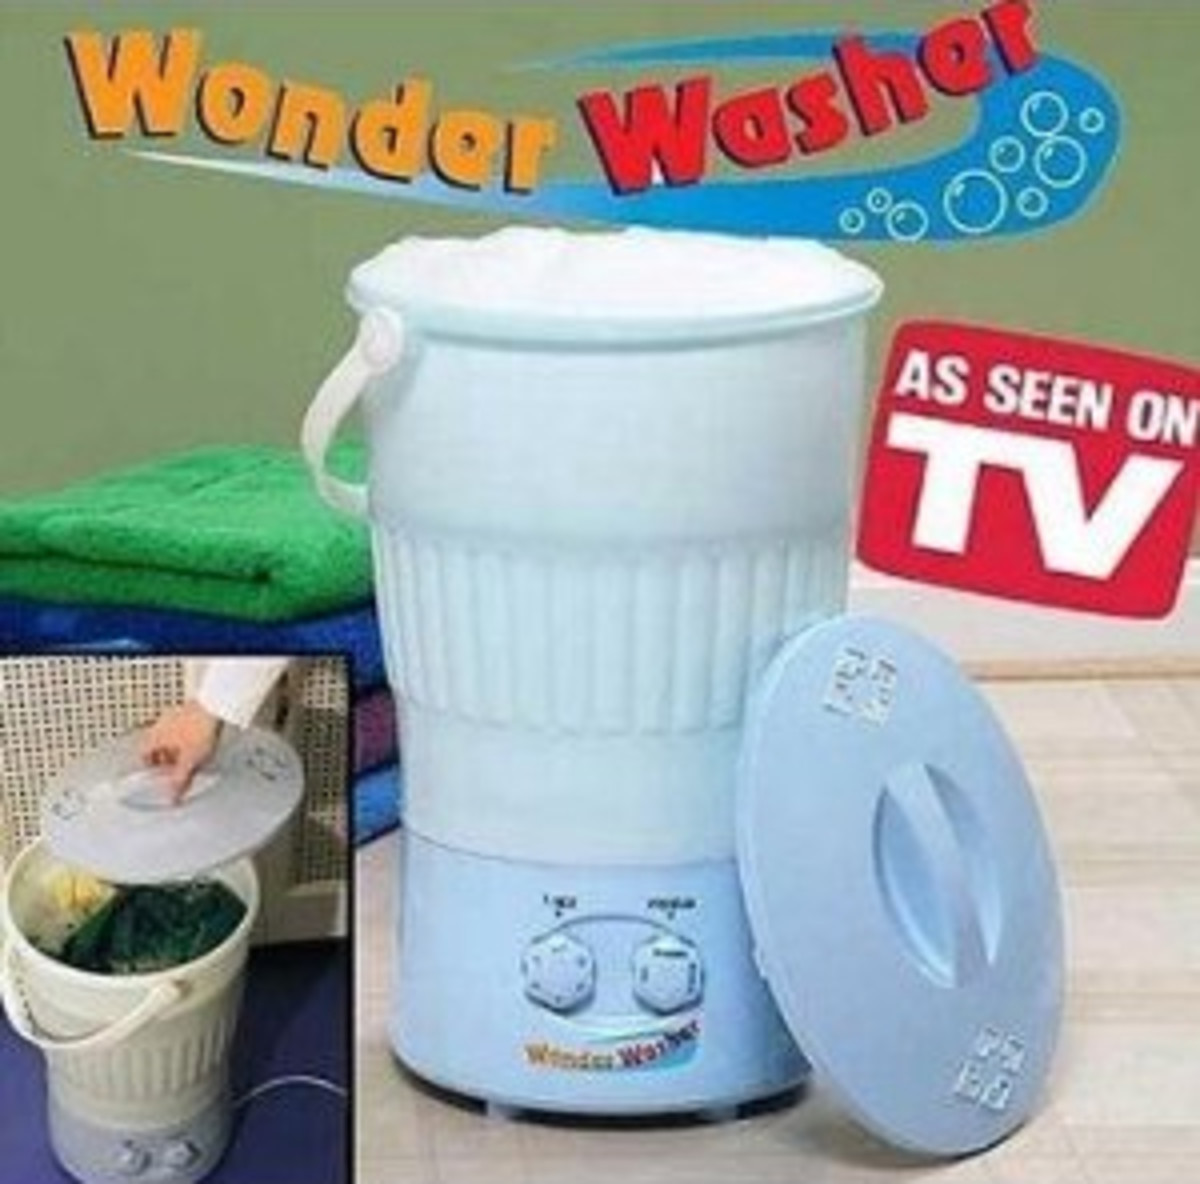 Tabletop Washing Machines - Small Mini Countertop Washers